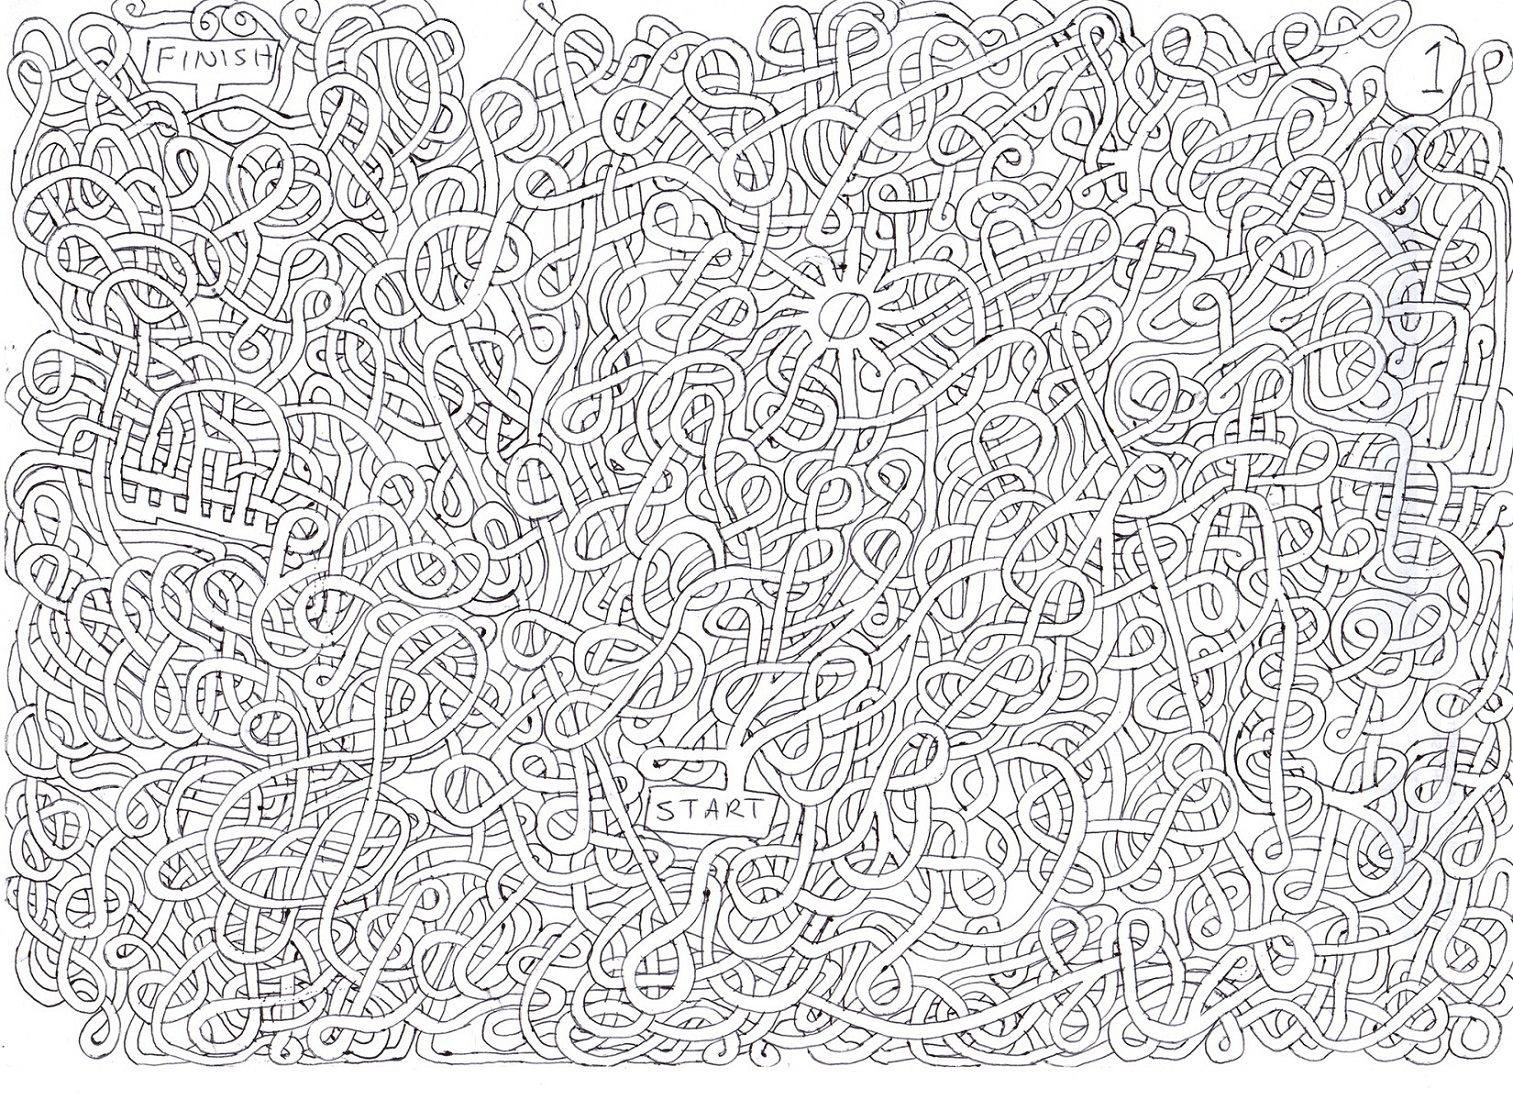 Maze Printable Games for Adults